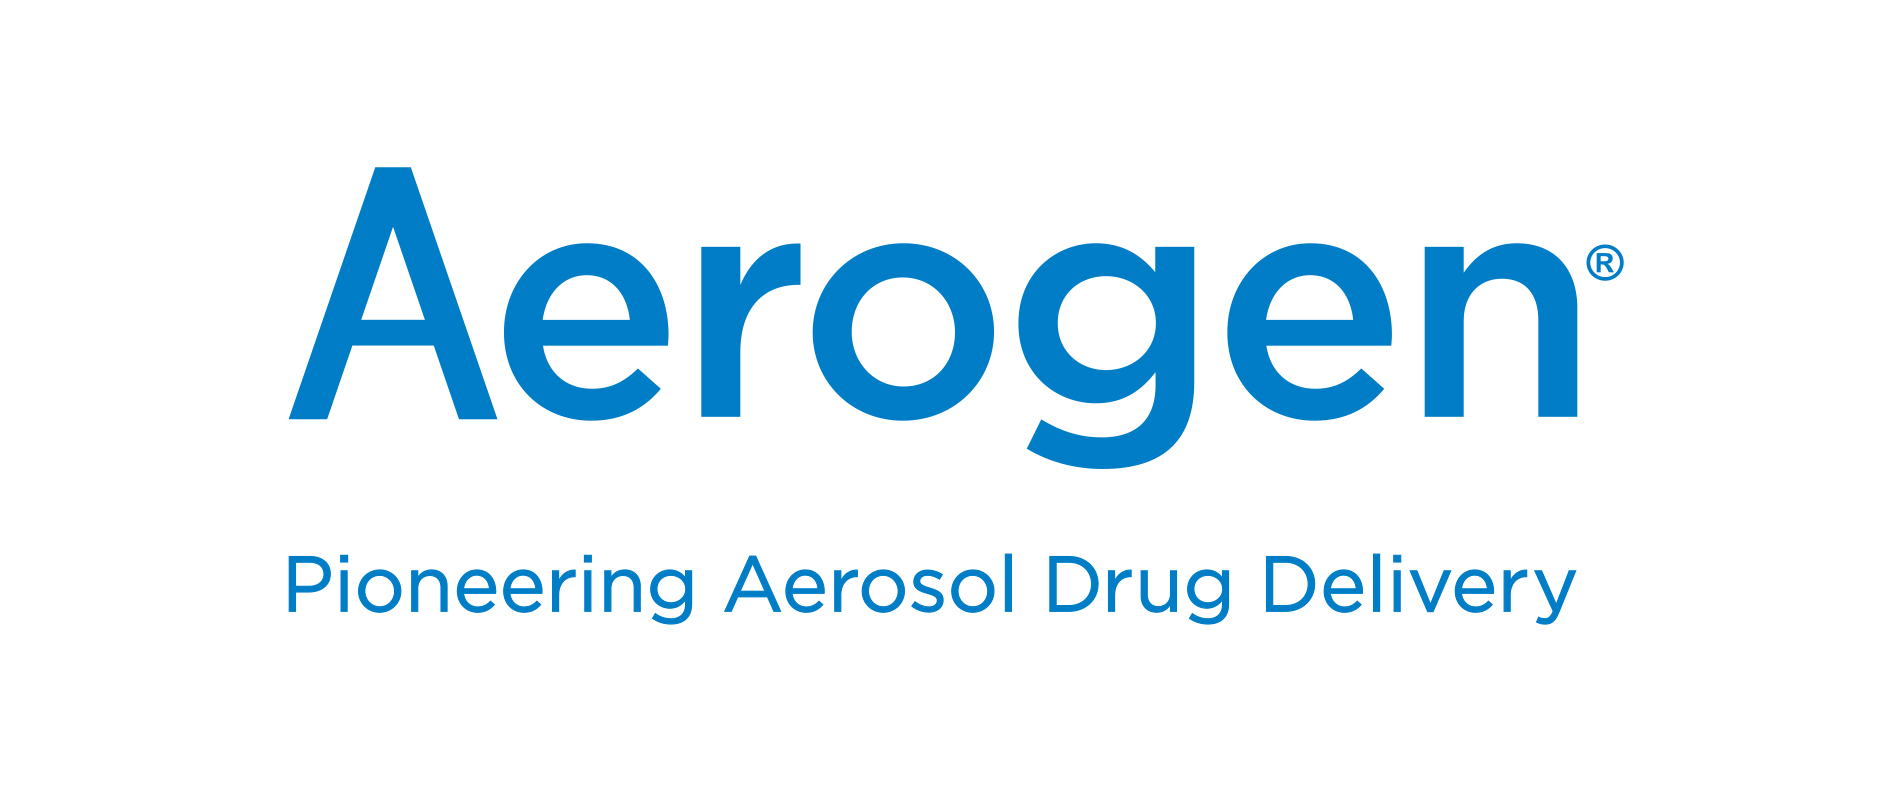 Aerogen logo with strapline